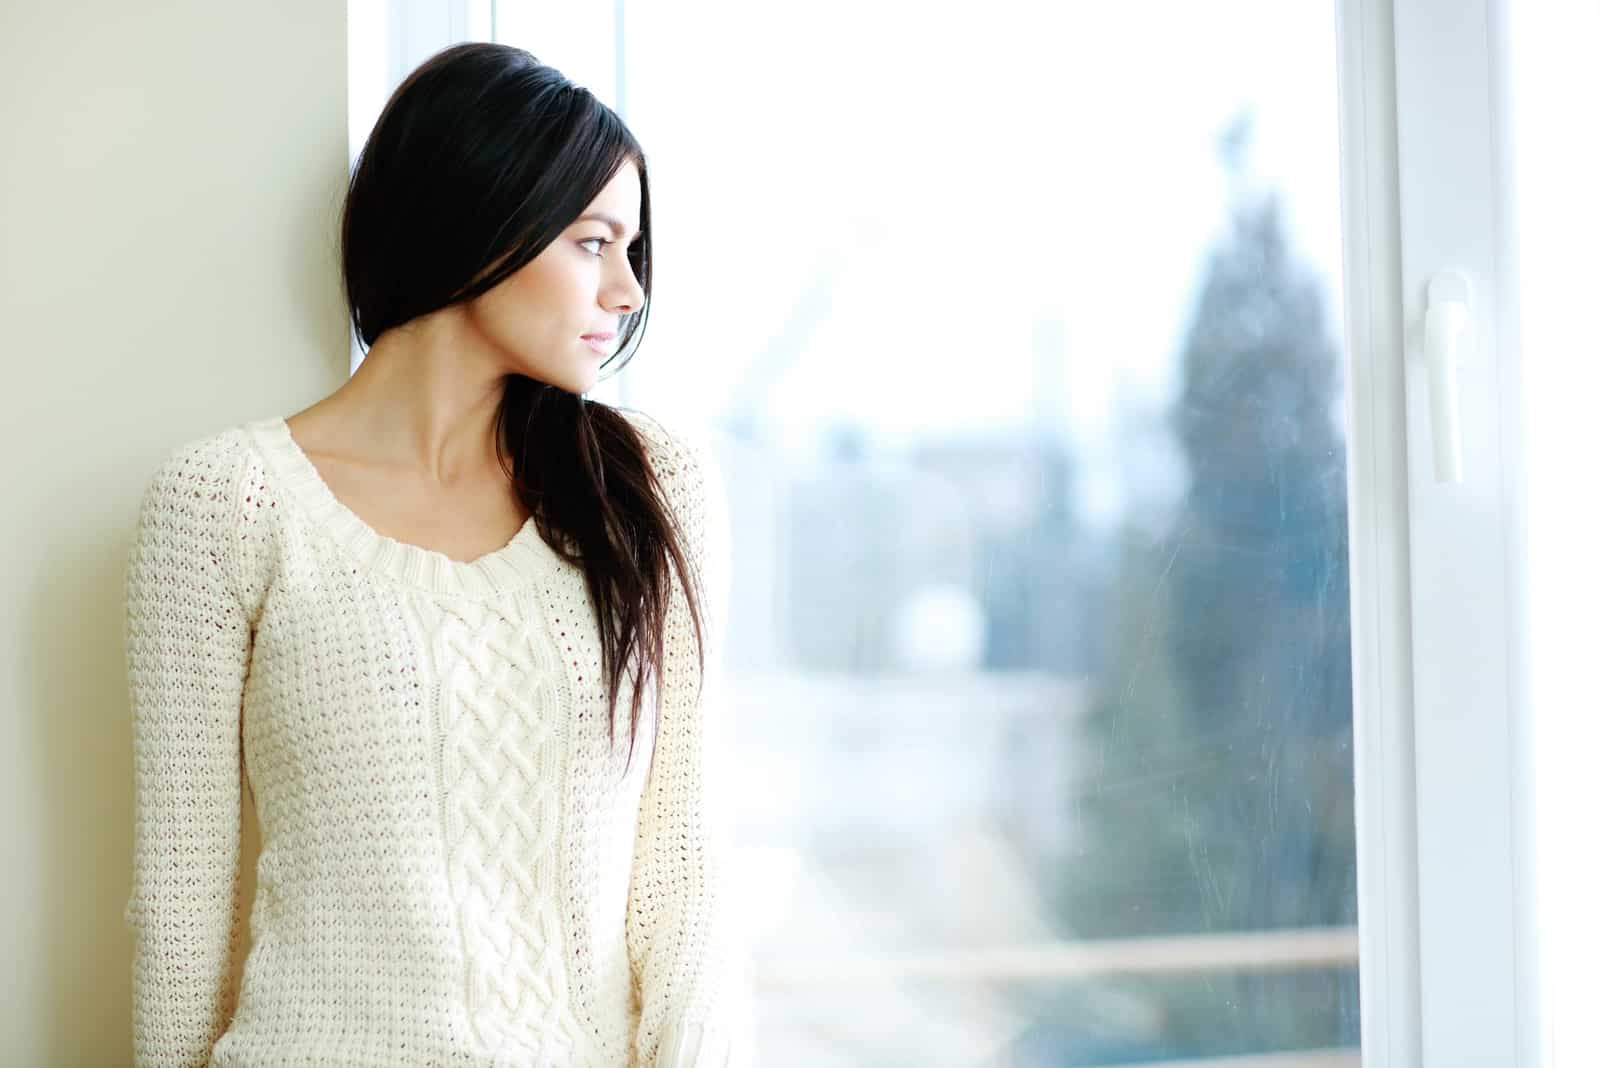 woman in white sweater standing near window